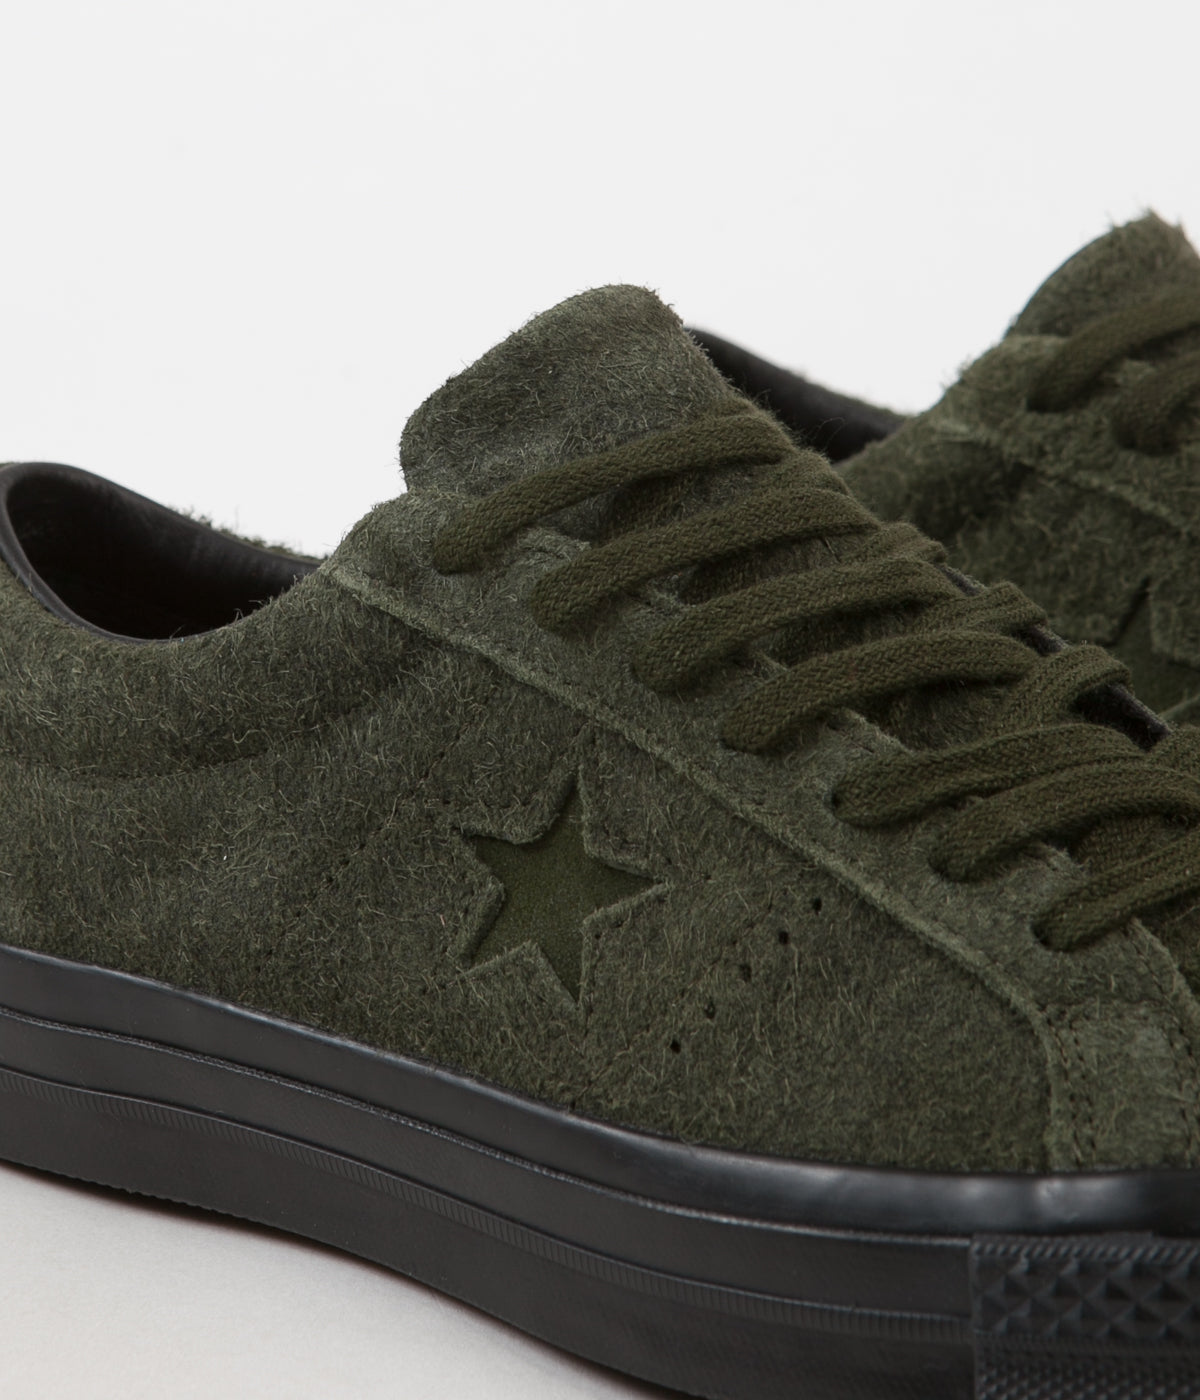 ... Converse One Star Ox Shoes - Utility Green   Utility Green ... cdc60bd7d